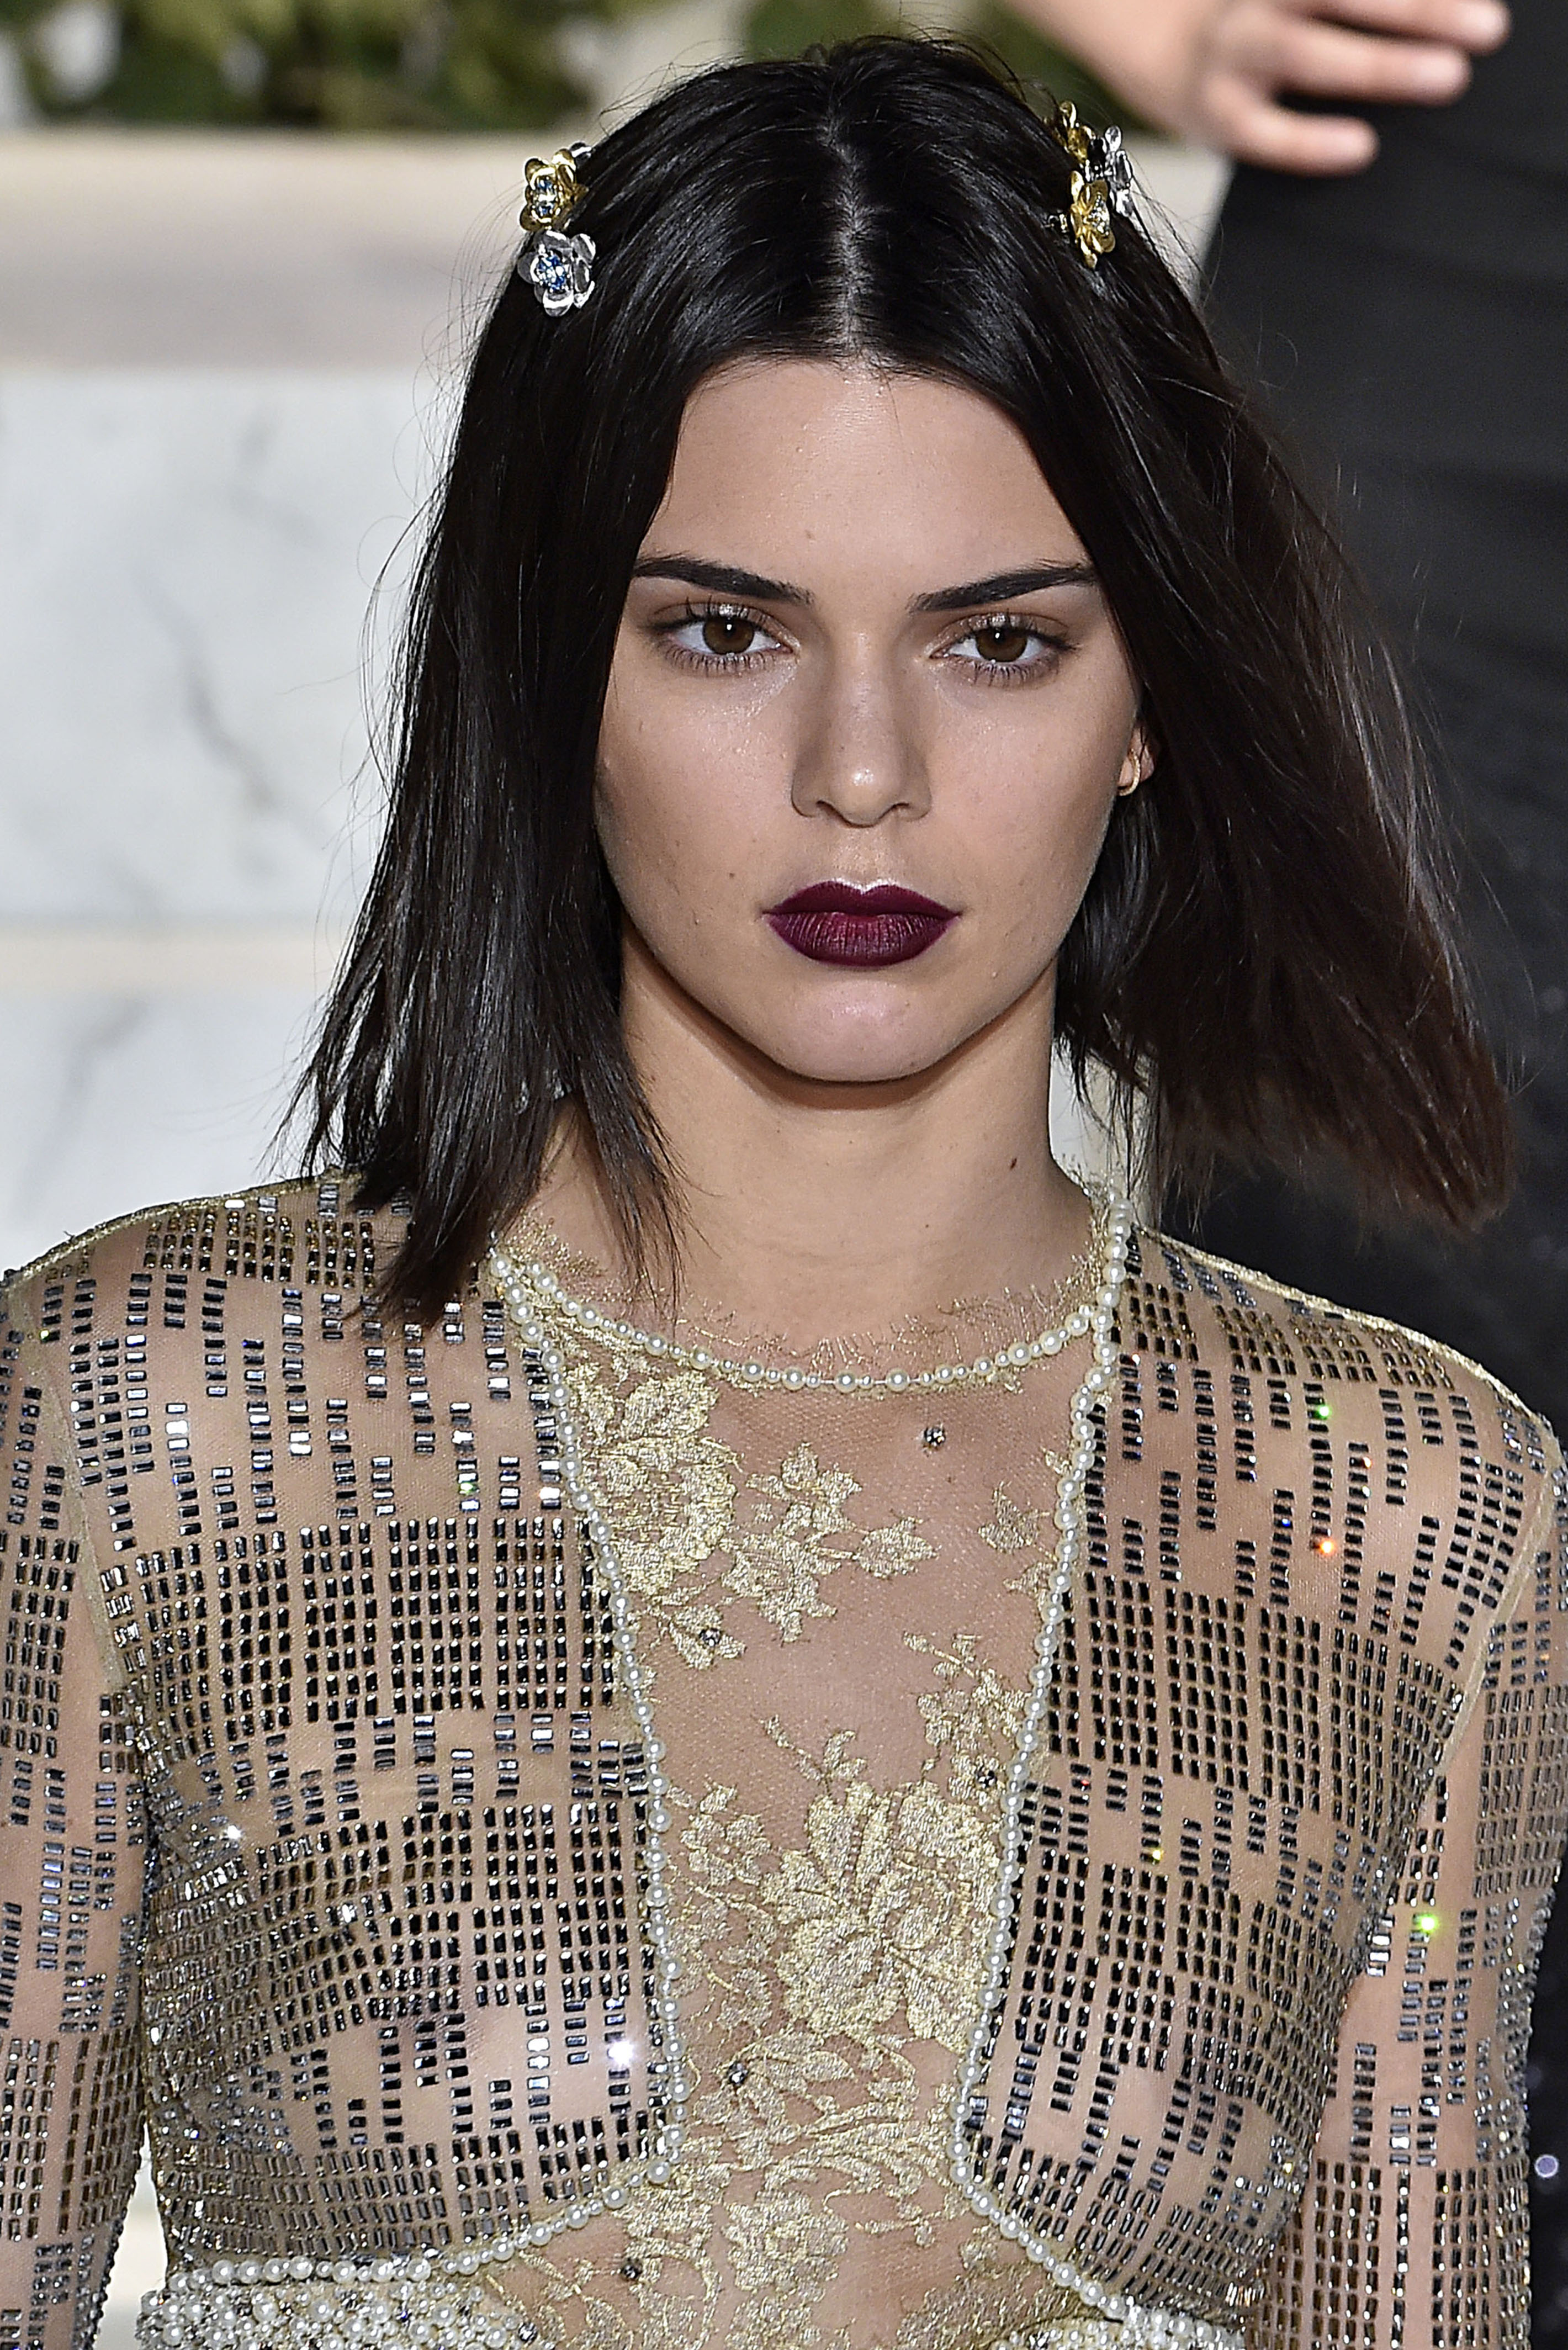 Kendall Jenner opened the La Perla fashion show in a sheer